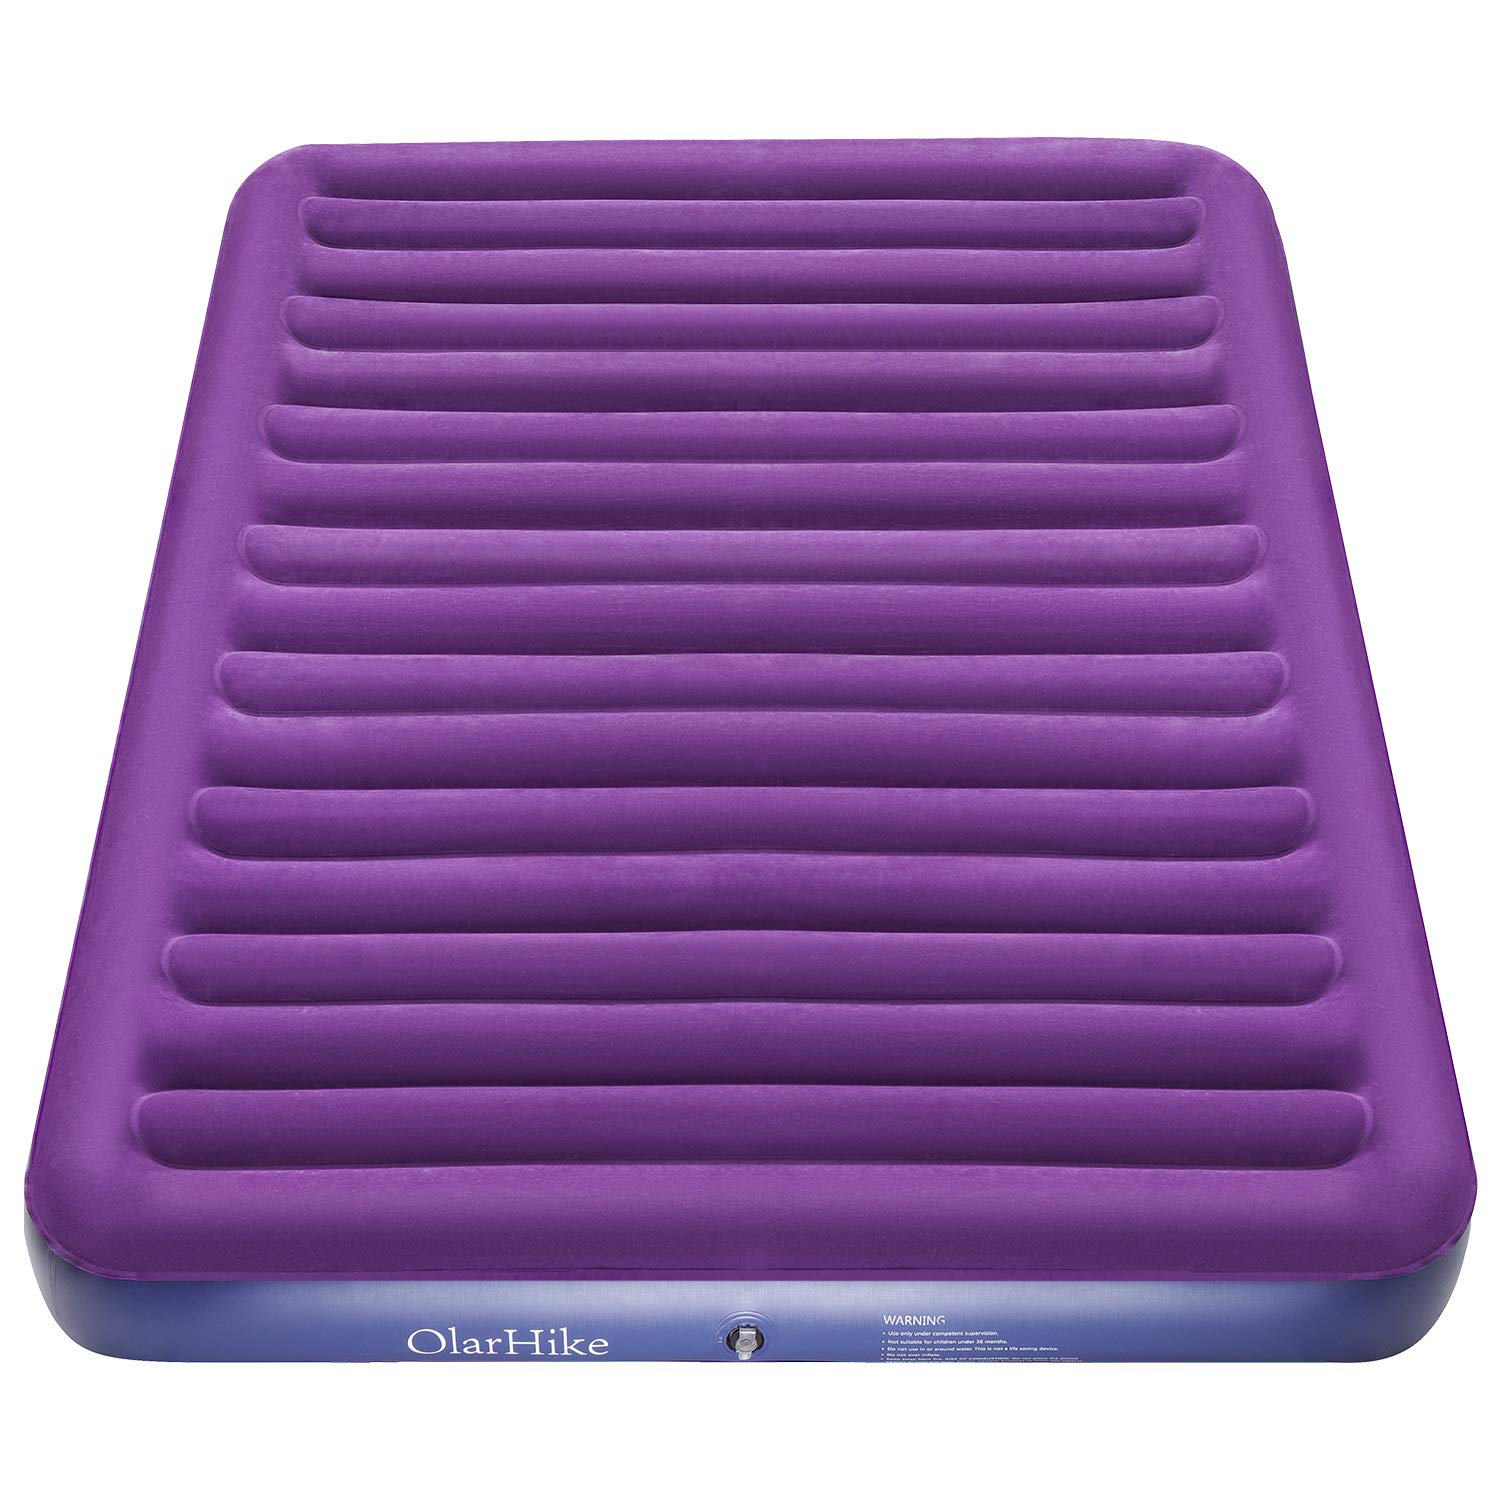 OlarHike Queen Air Mattress, Inflatable Single High Airbed for Guests, Blow up Raised Air Bed for Camping with Electric Air Battery Pump, Purple by OlarHike (Image #9)